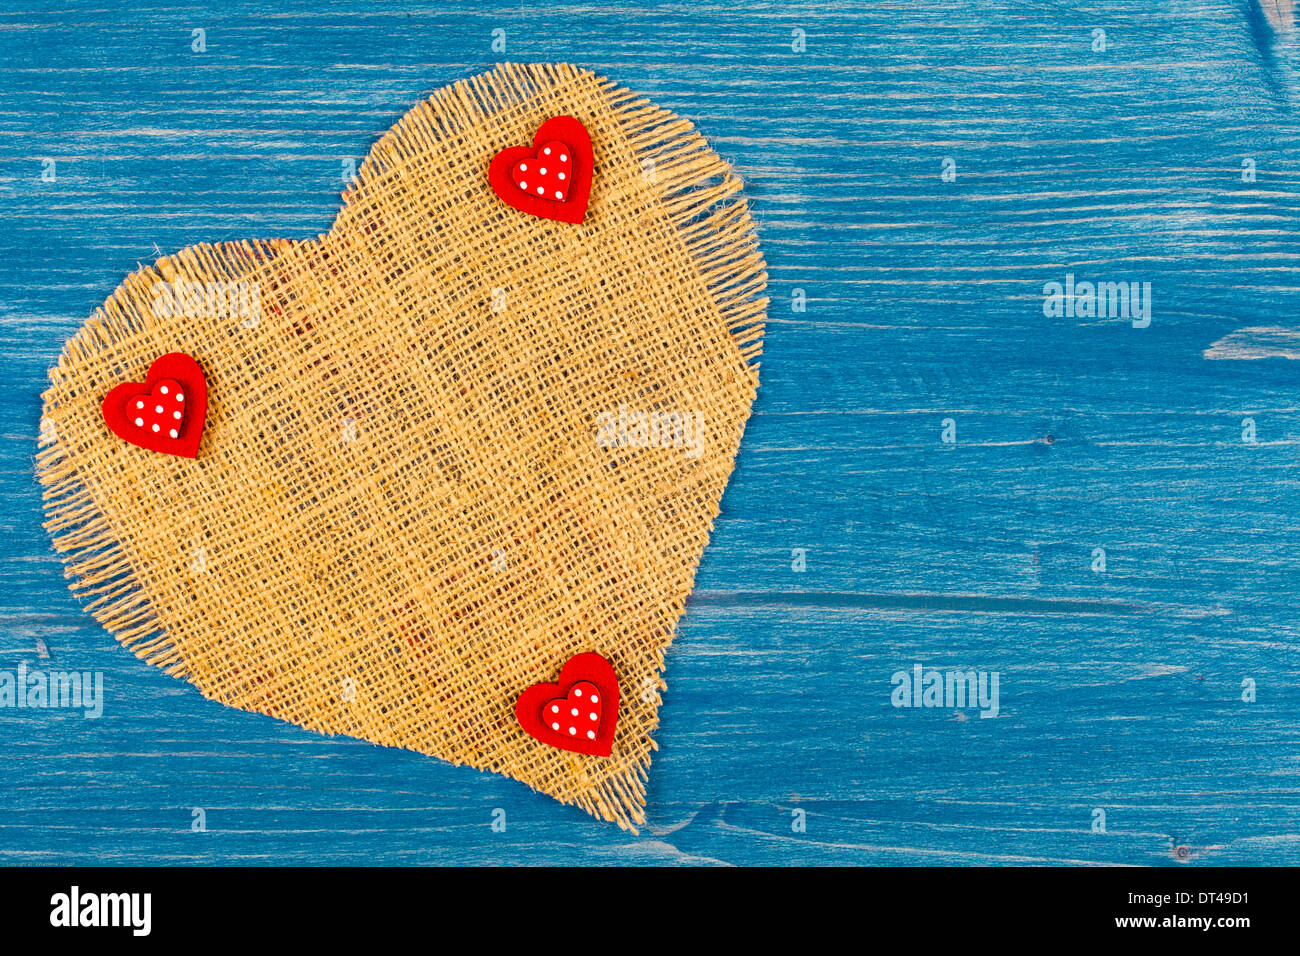 Heart made of linen on a blue background with 3 little hearts - Stock Image